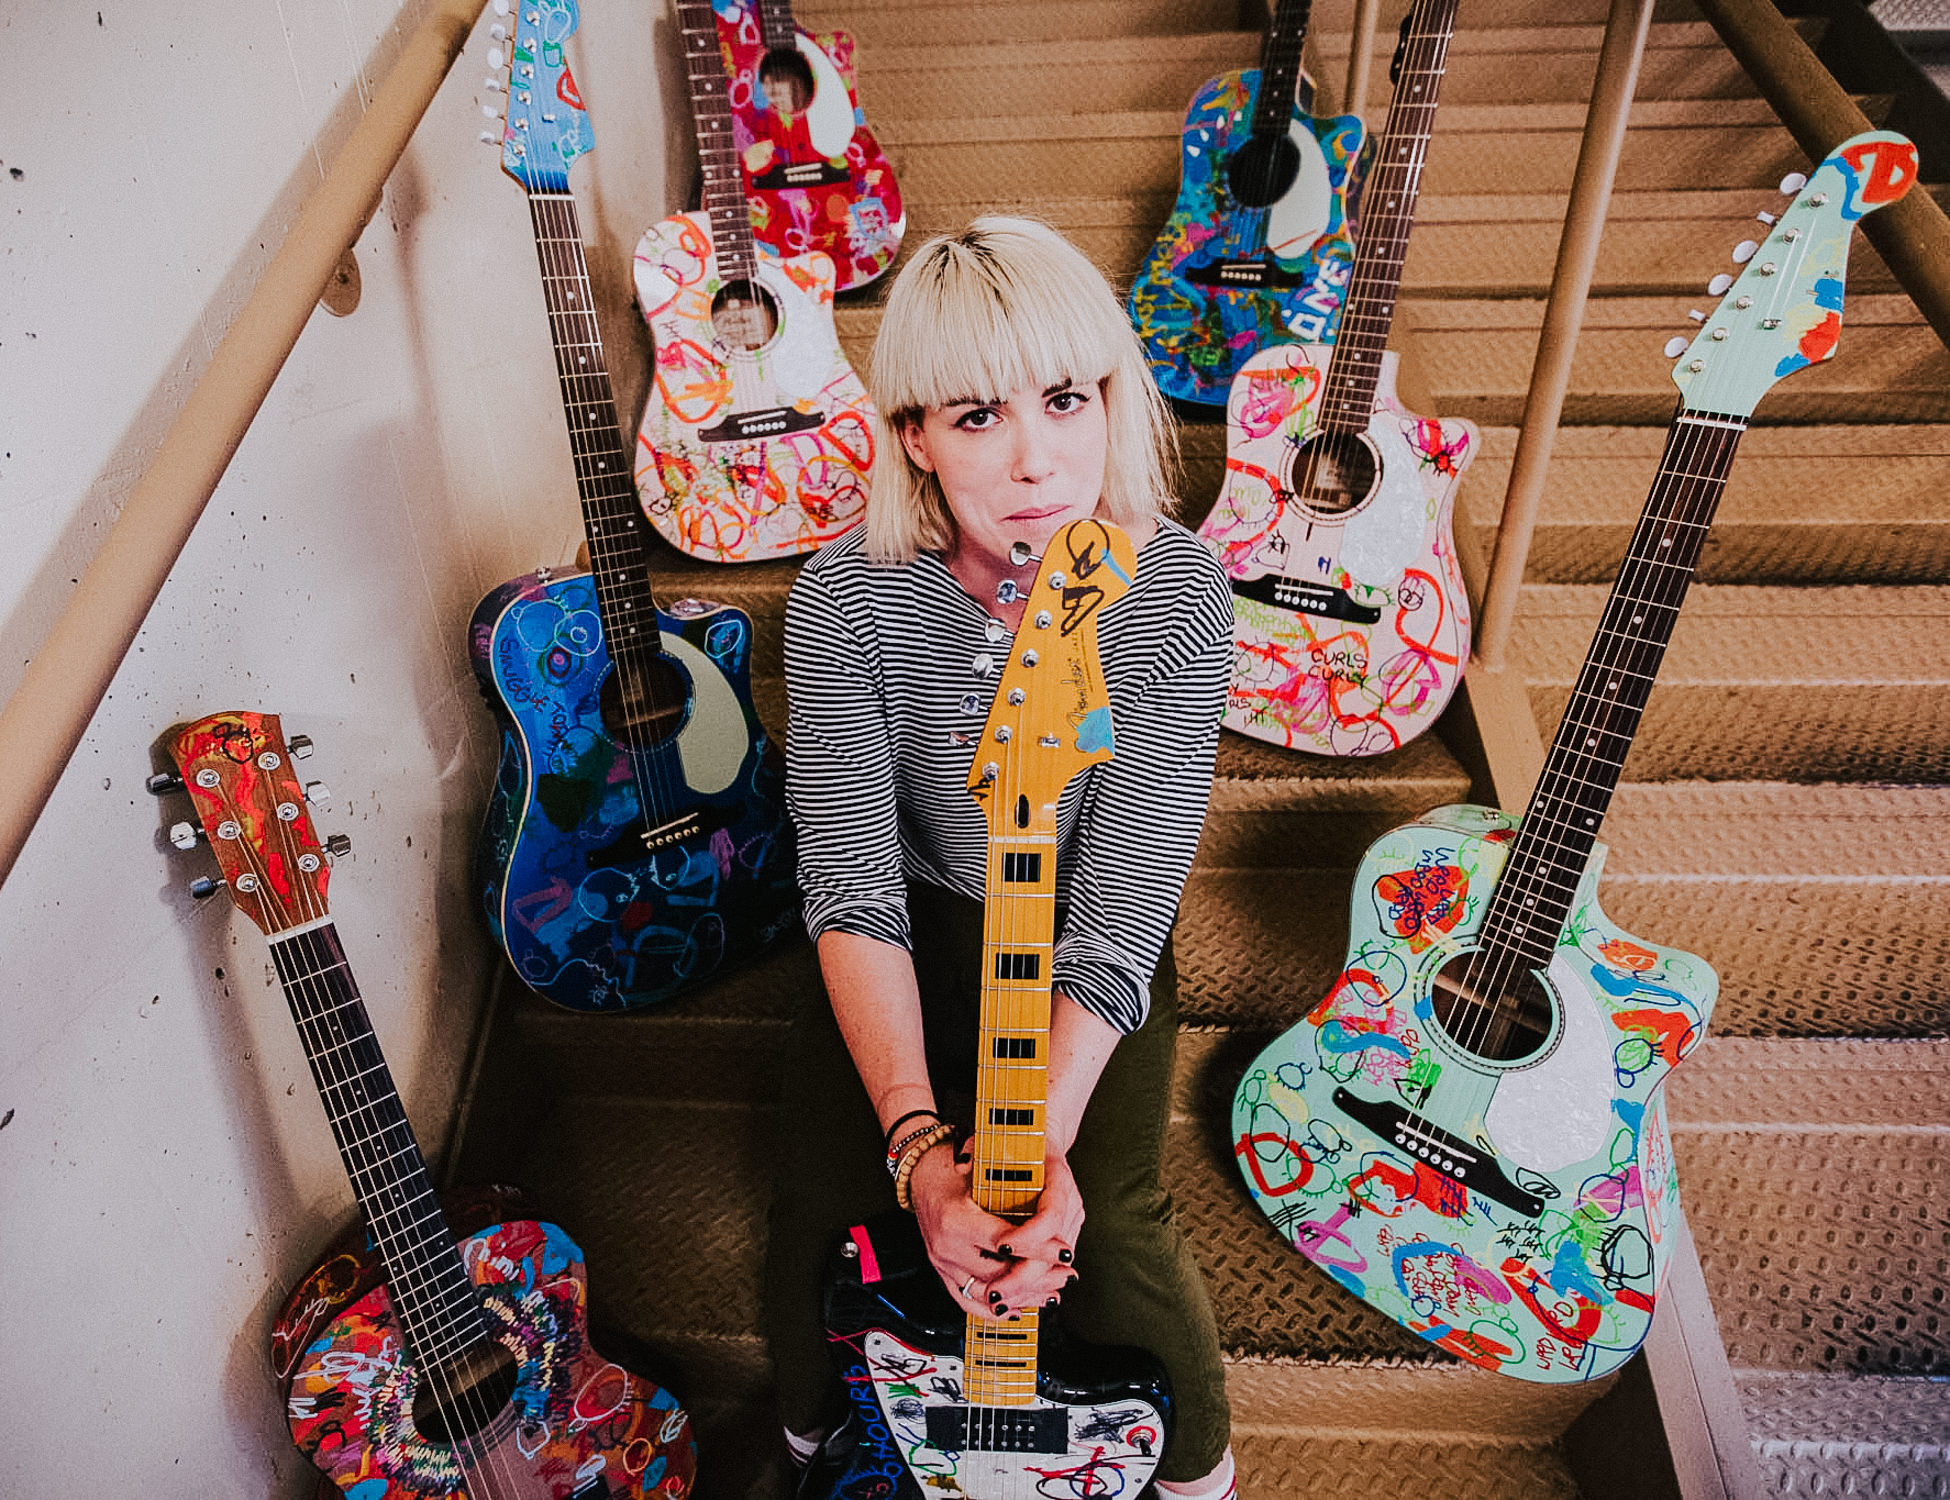 hannah-hooper-guitar-art-portrait-grouplove-AnnaLeeMedia